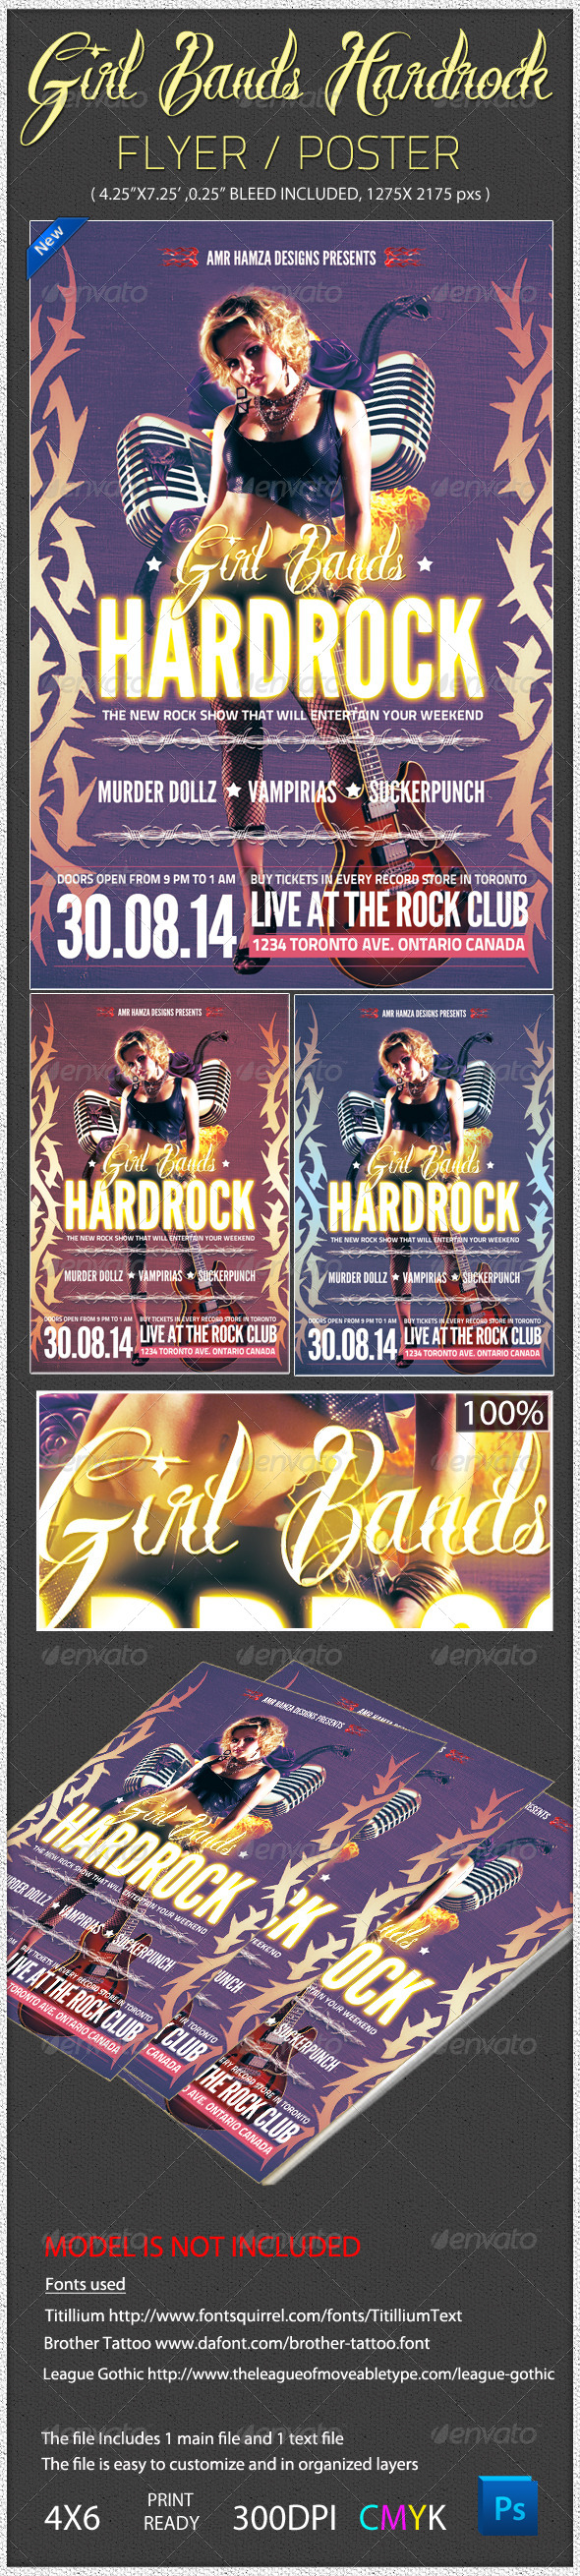 GraphicRiver Girl Bands Hardrock Flyer Poster 5294536